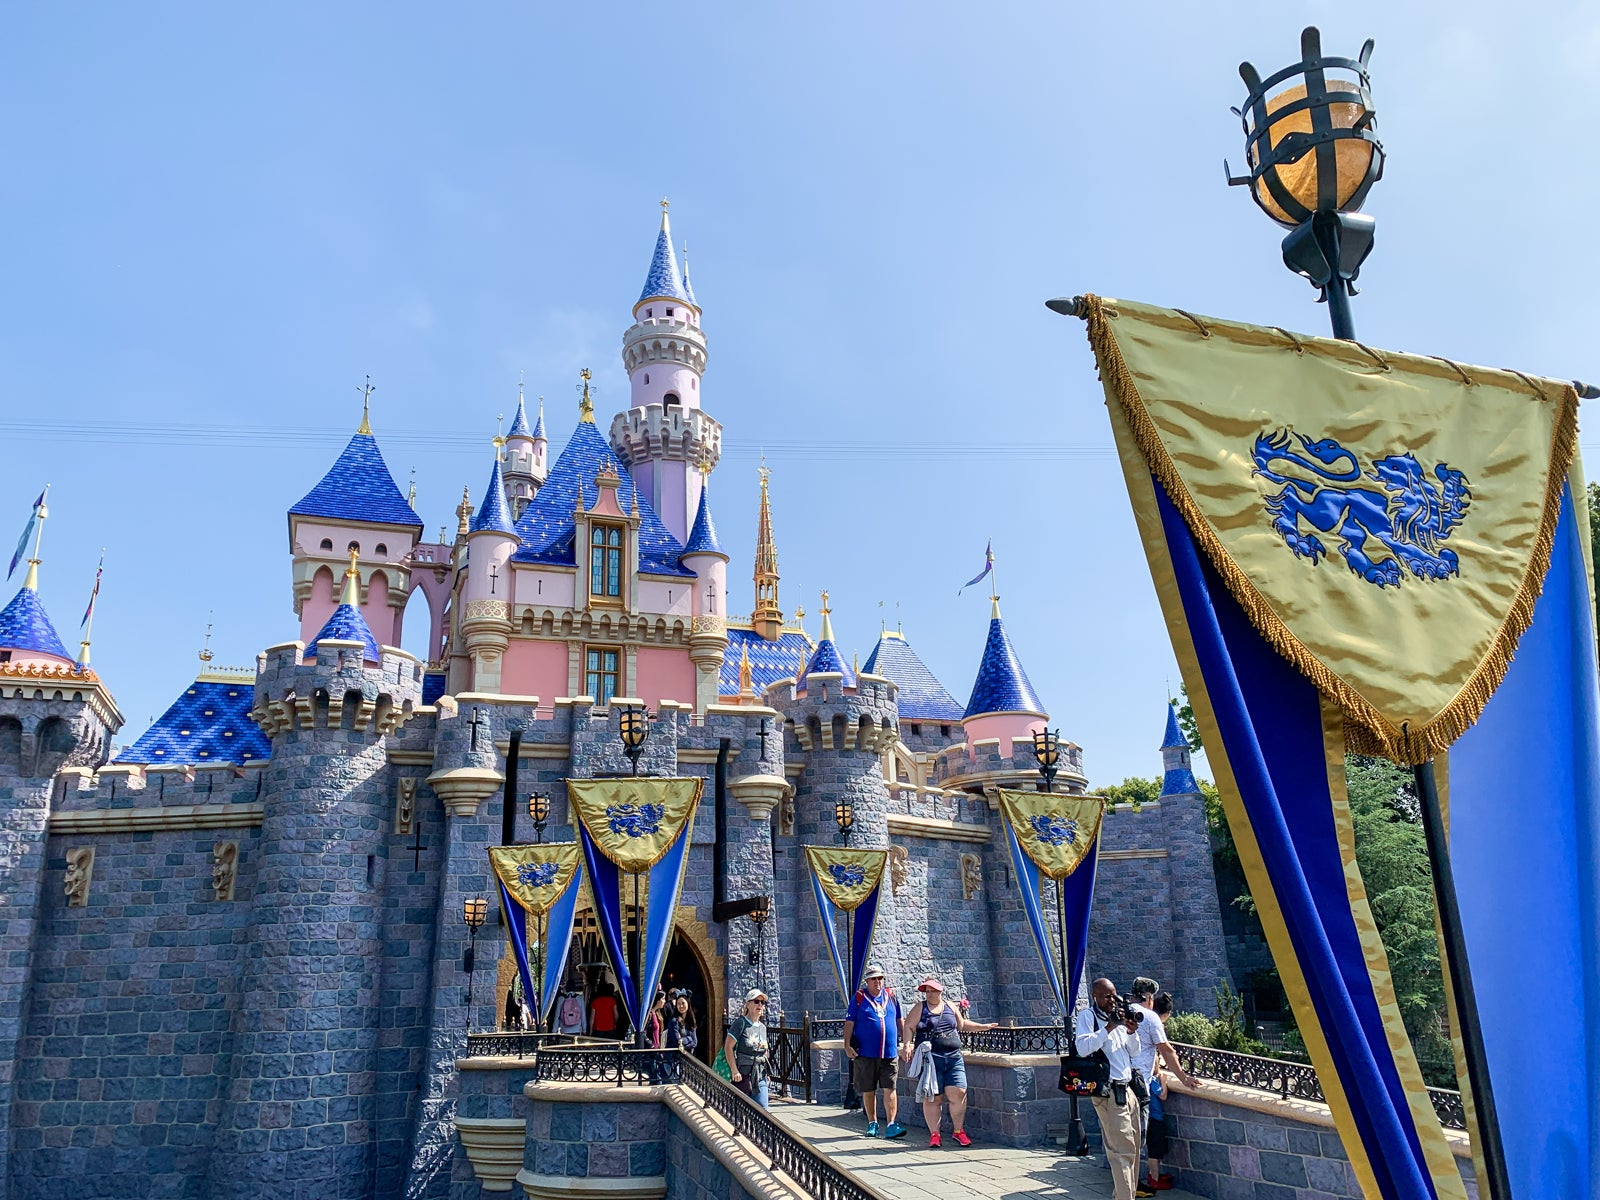 A tale of two Disneys: What to expect at Disney World vs Disneyland - The Points Guy